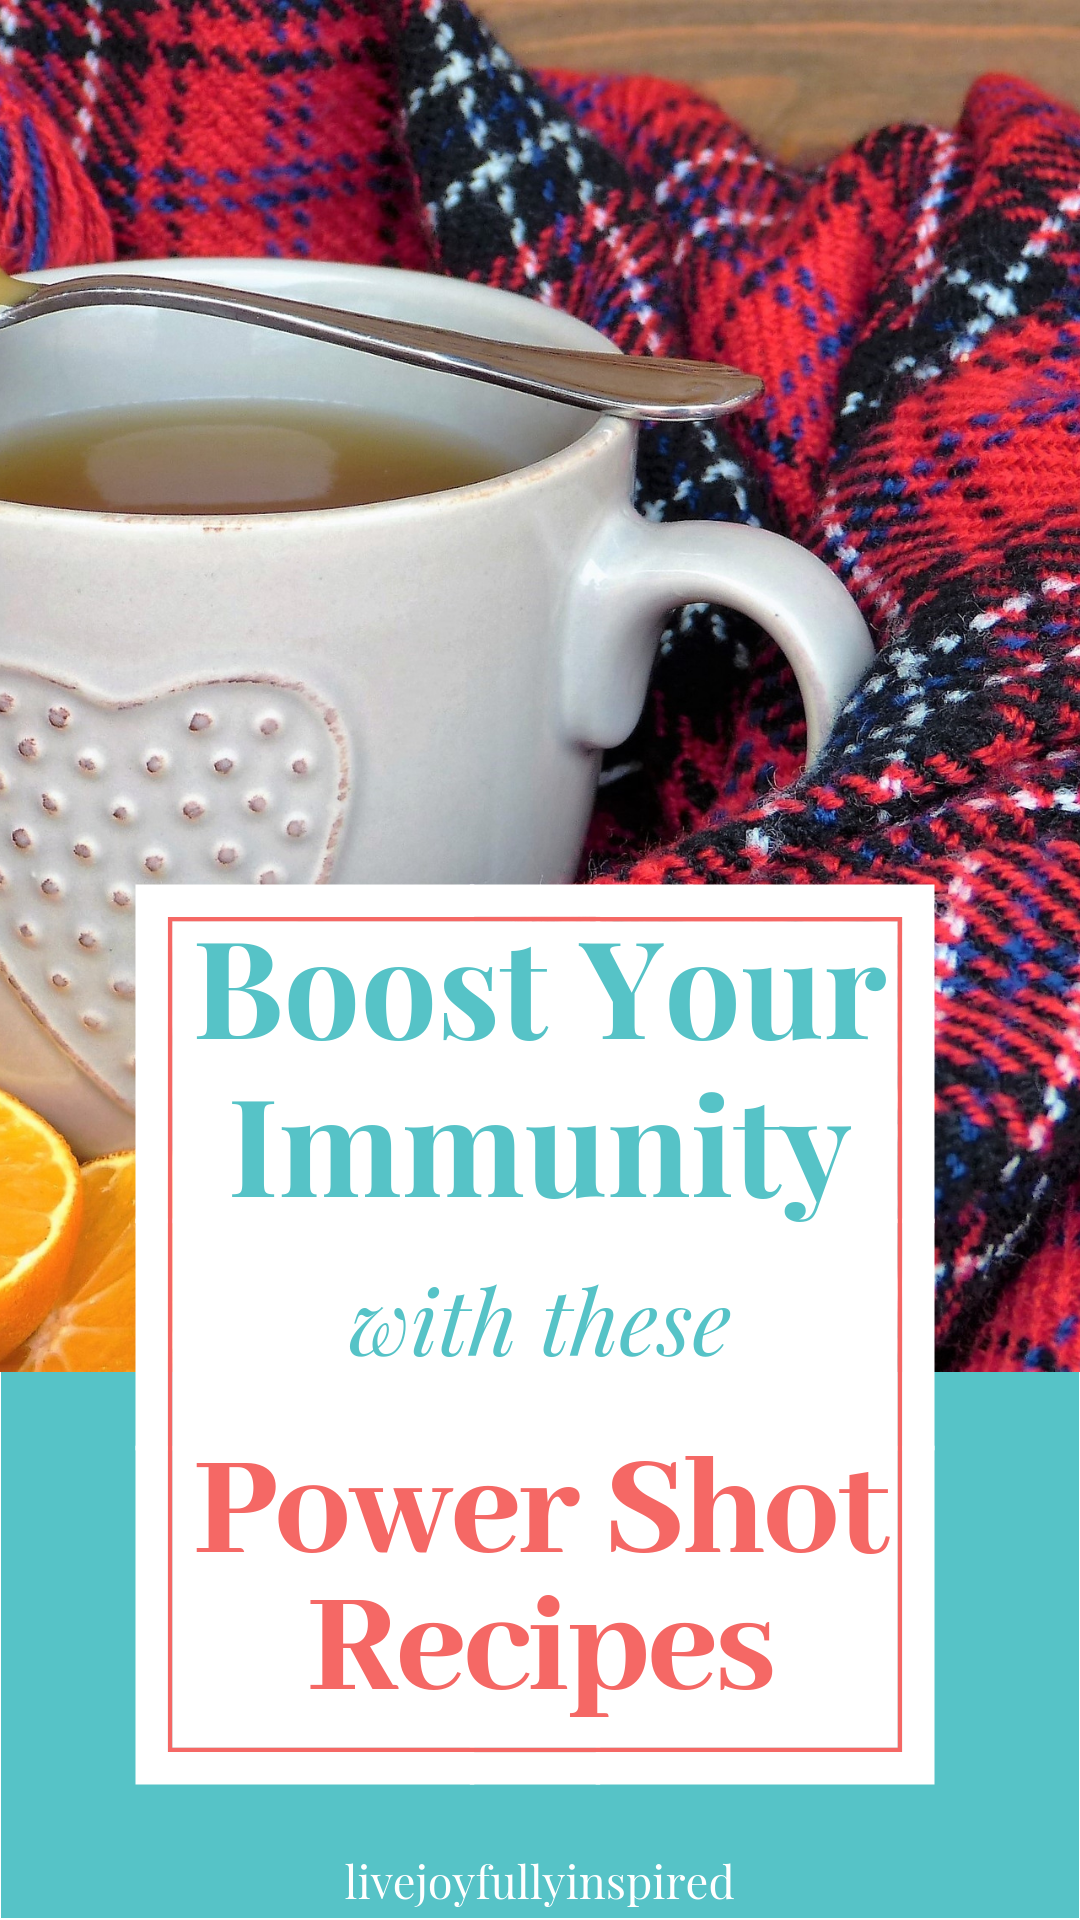 11 Immune Boosting Power Shot Recipes. Staying on track with your health and wellness can be challenging. Many of these recipes contain ginger, lemon, turmeric, and other infection fighting goodies. #buildimmunity #powershot #ginger